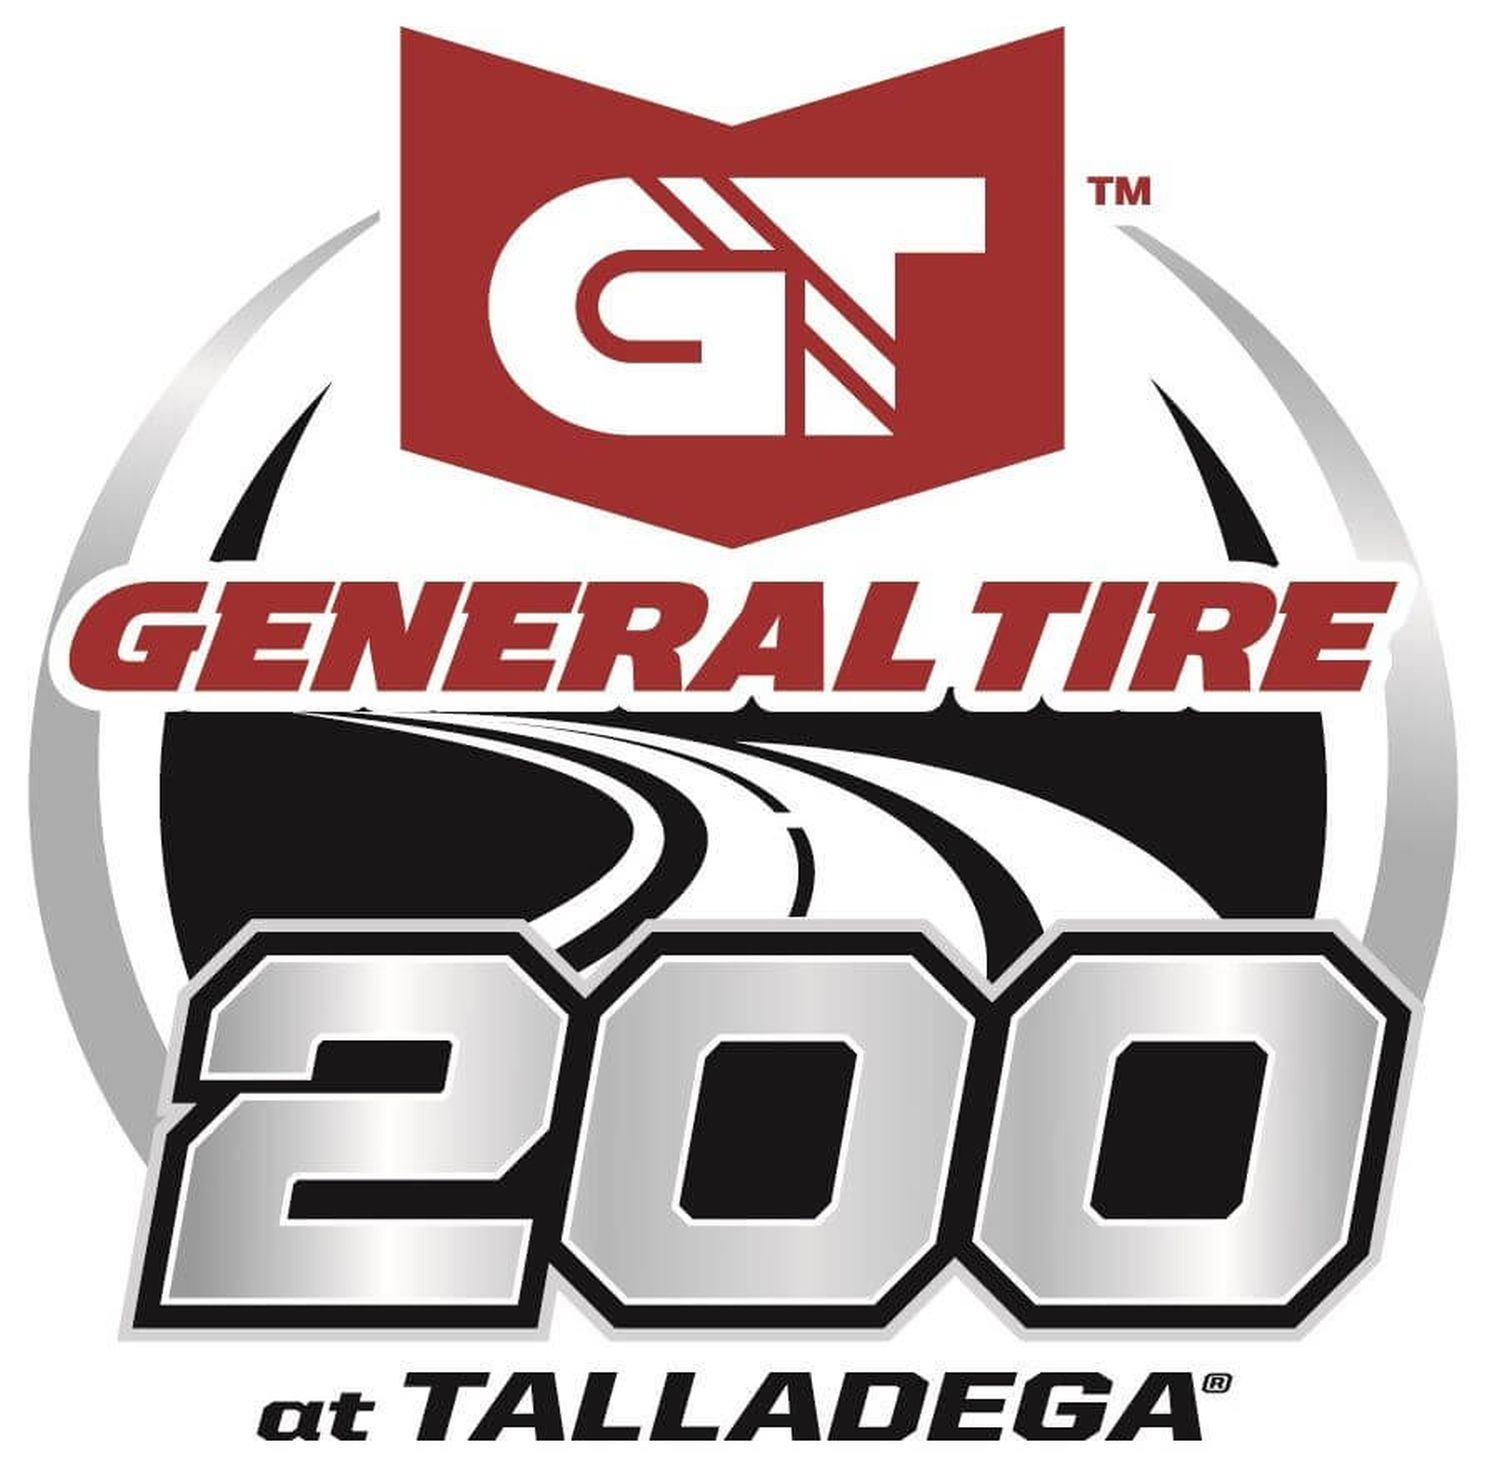 arca qualifying canceled at talladega general tire 200 field set by rh catchfence com logotipo general tire general tire logansport in